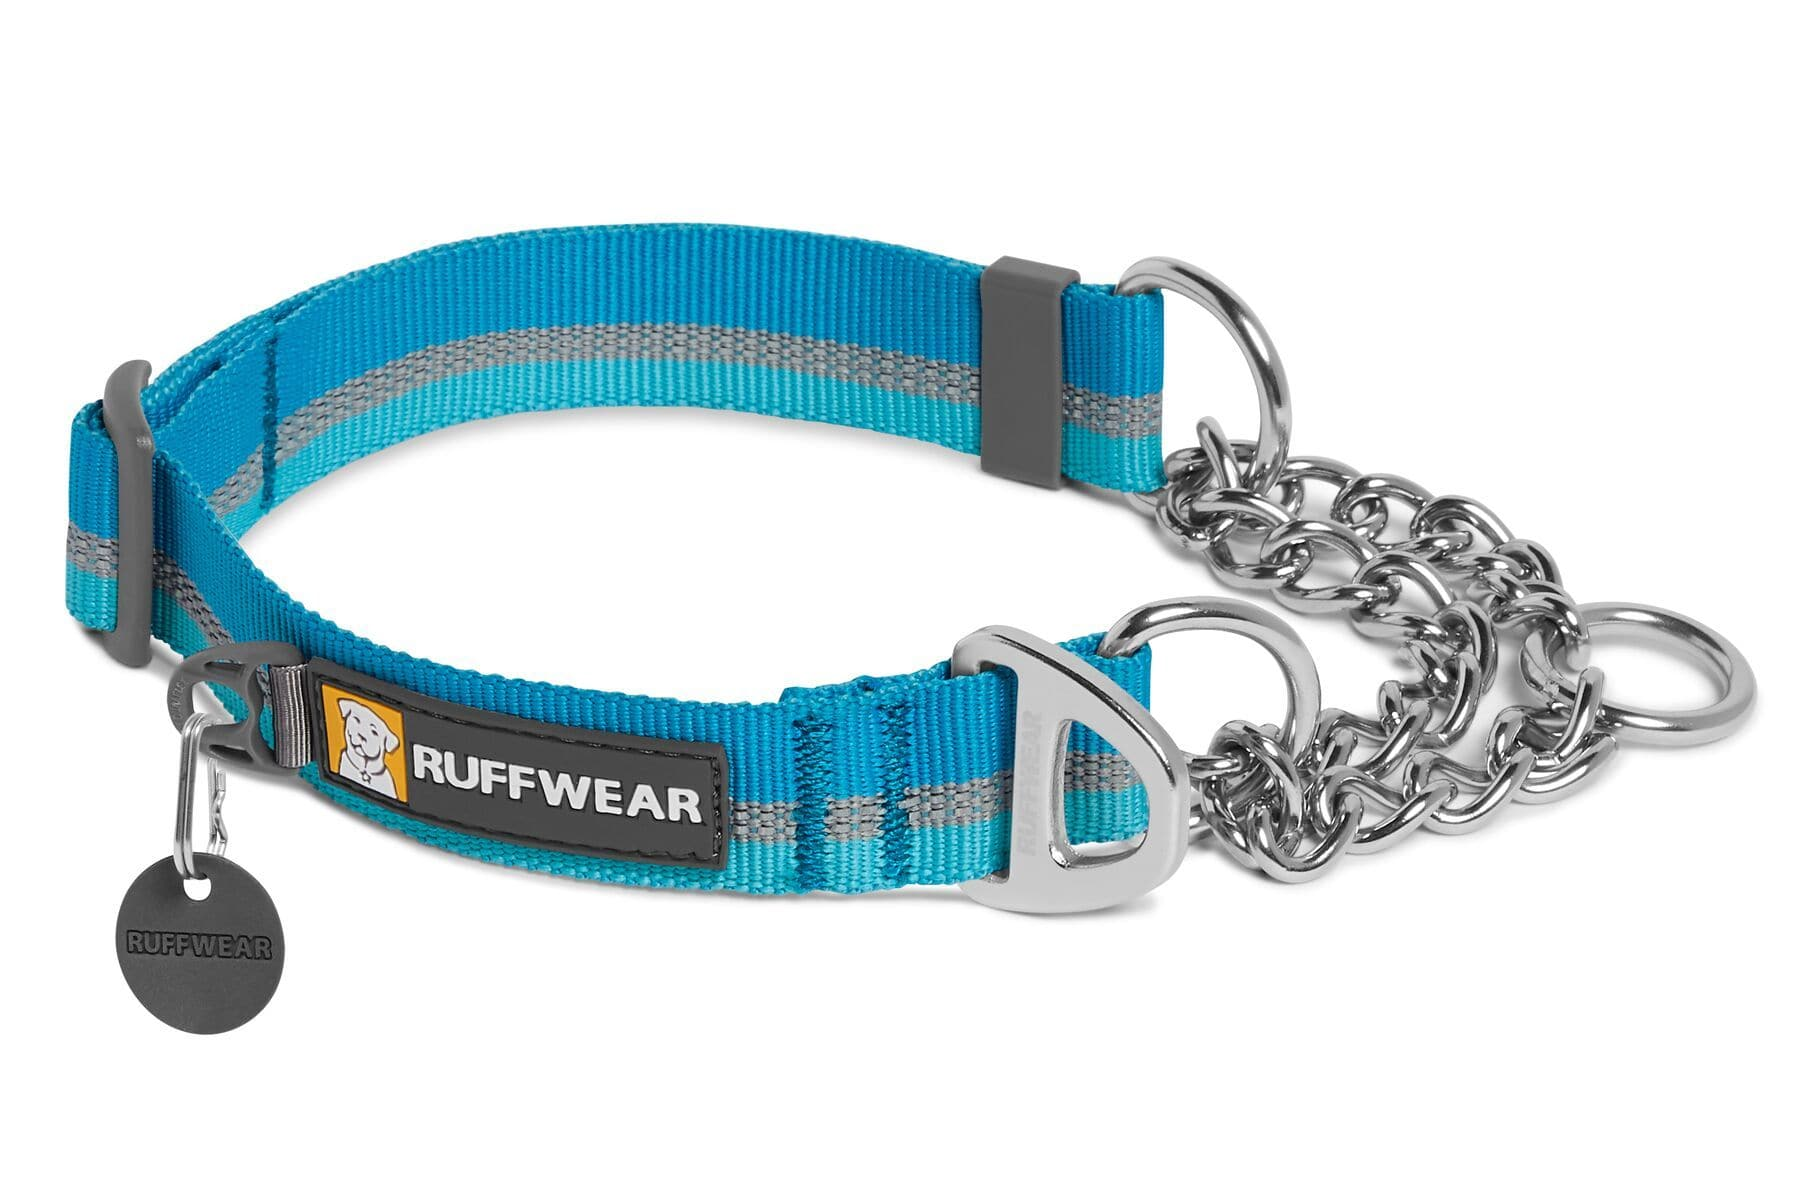 Collar para Perros Modelo Chain Reaction en Azul (Blue Dusk) - Ruffwear